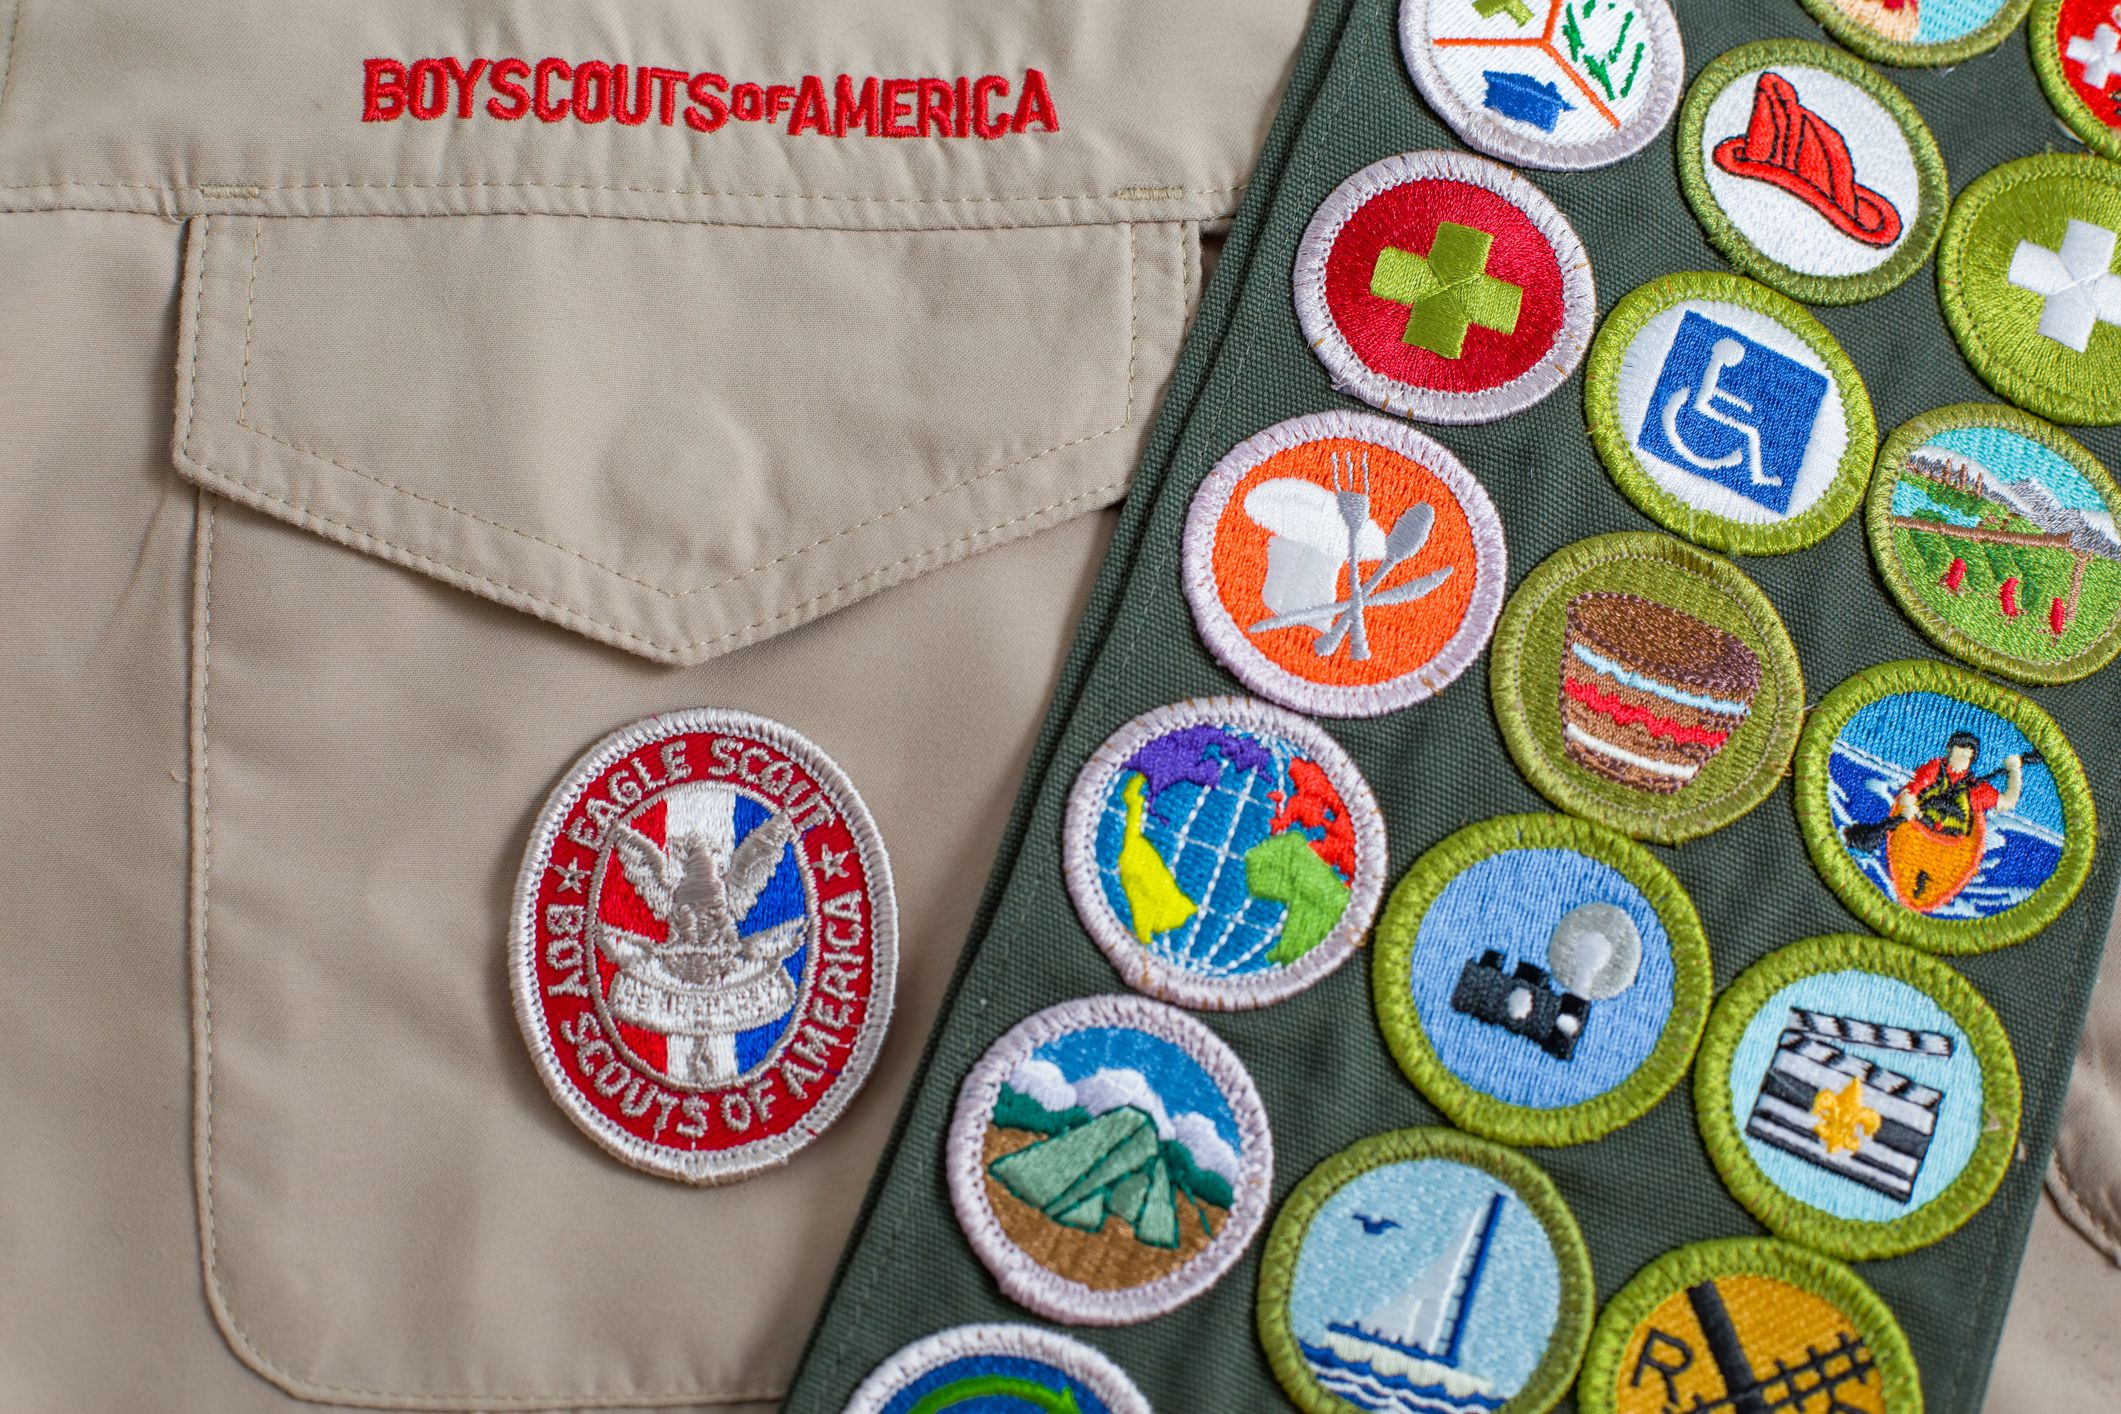 Scout Uniform with Sash